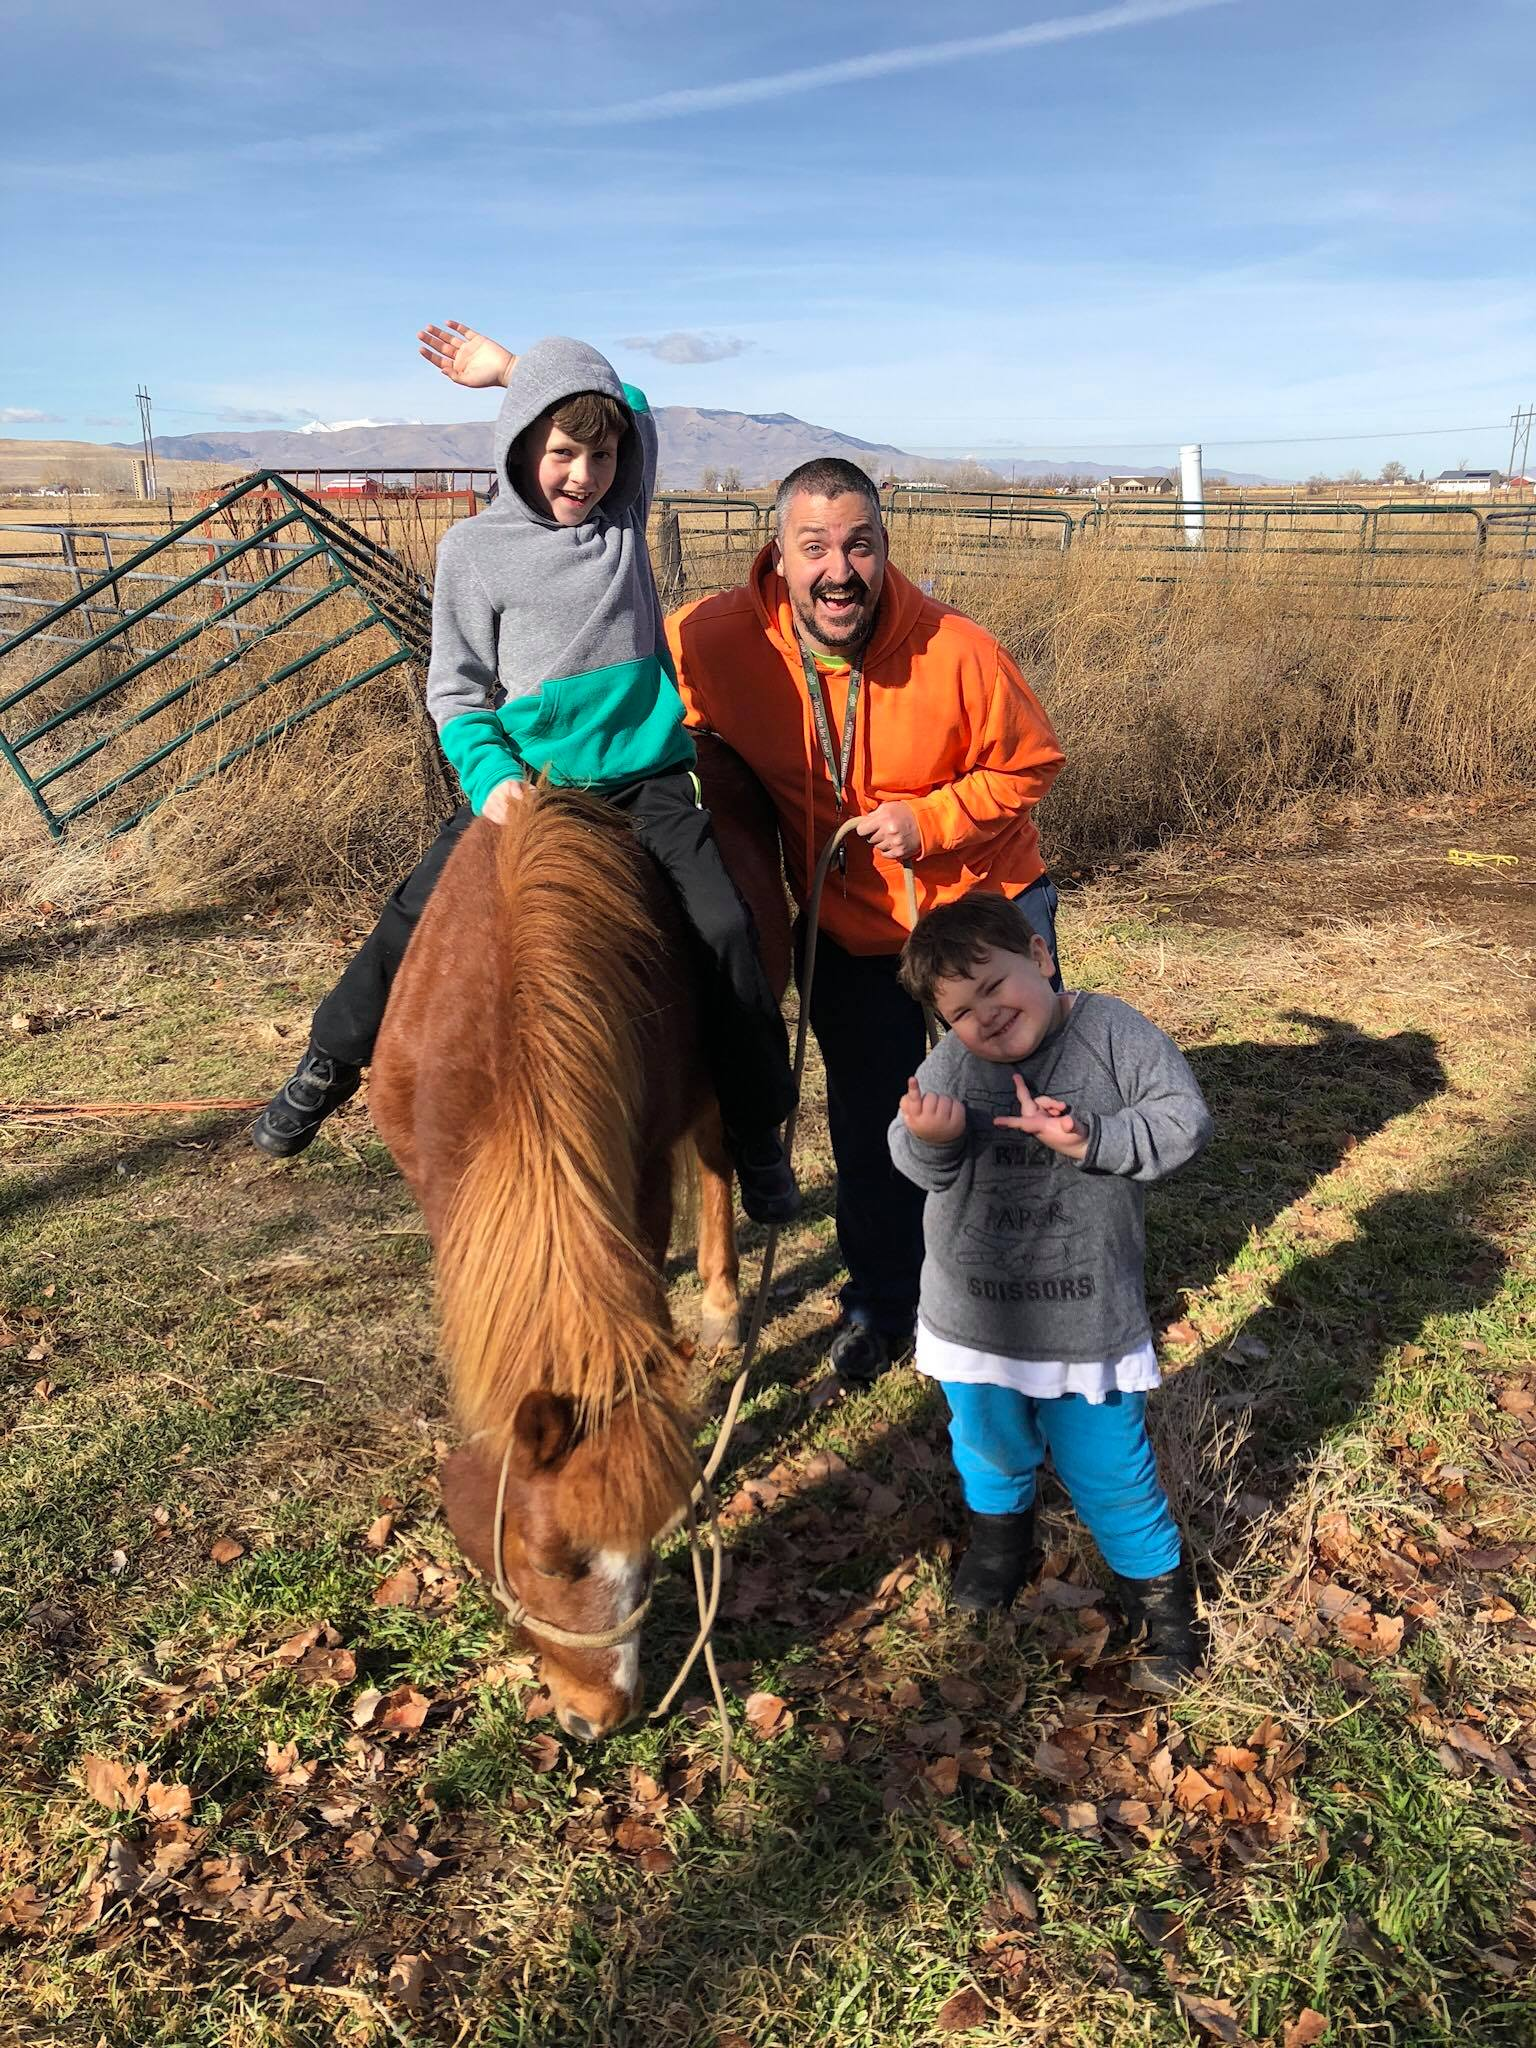 A  9 Year old boy sitting on a pony while his dad and brother hang out nearby